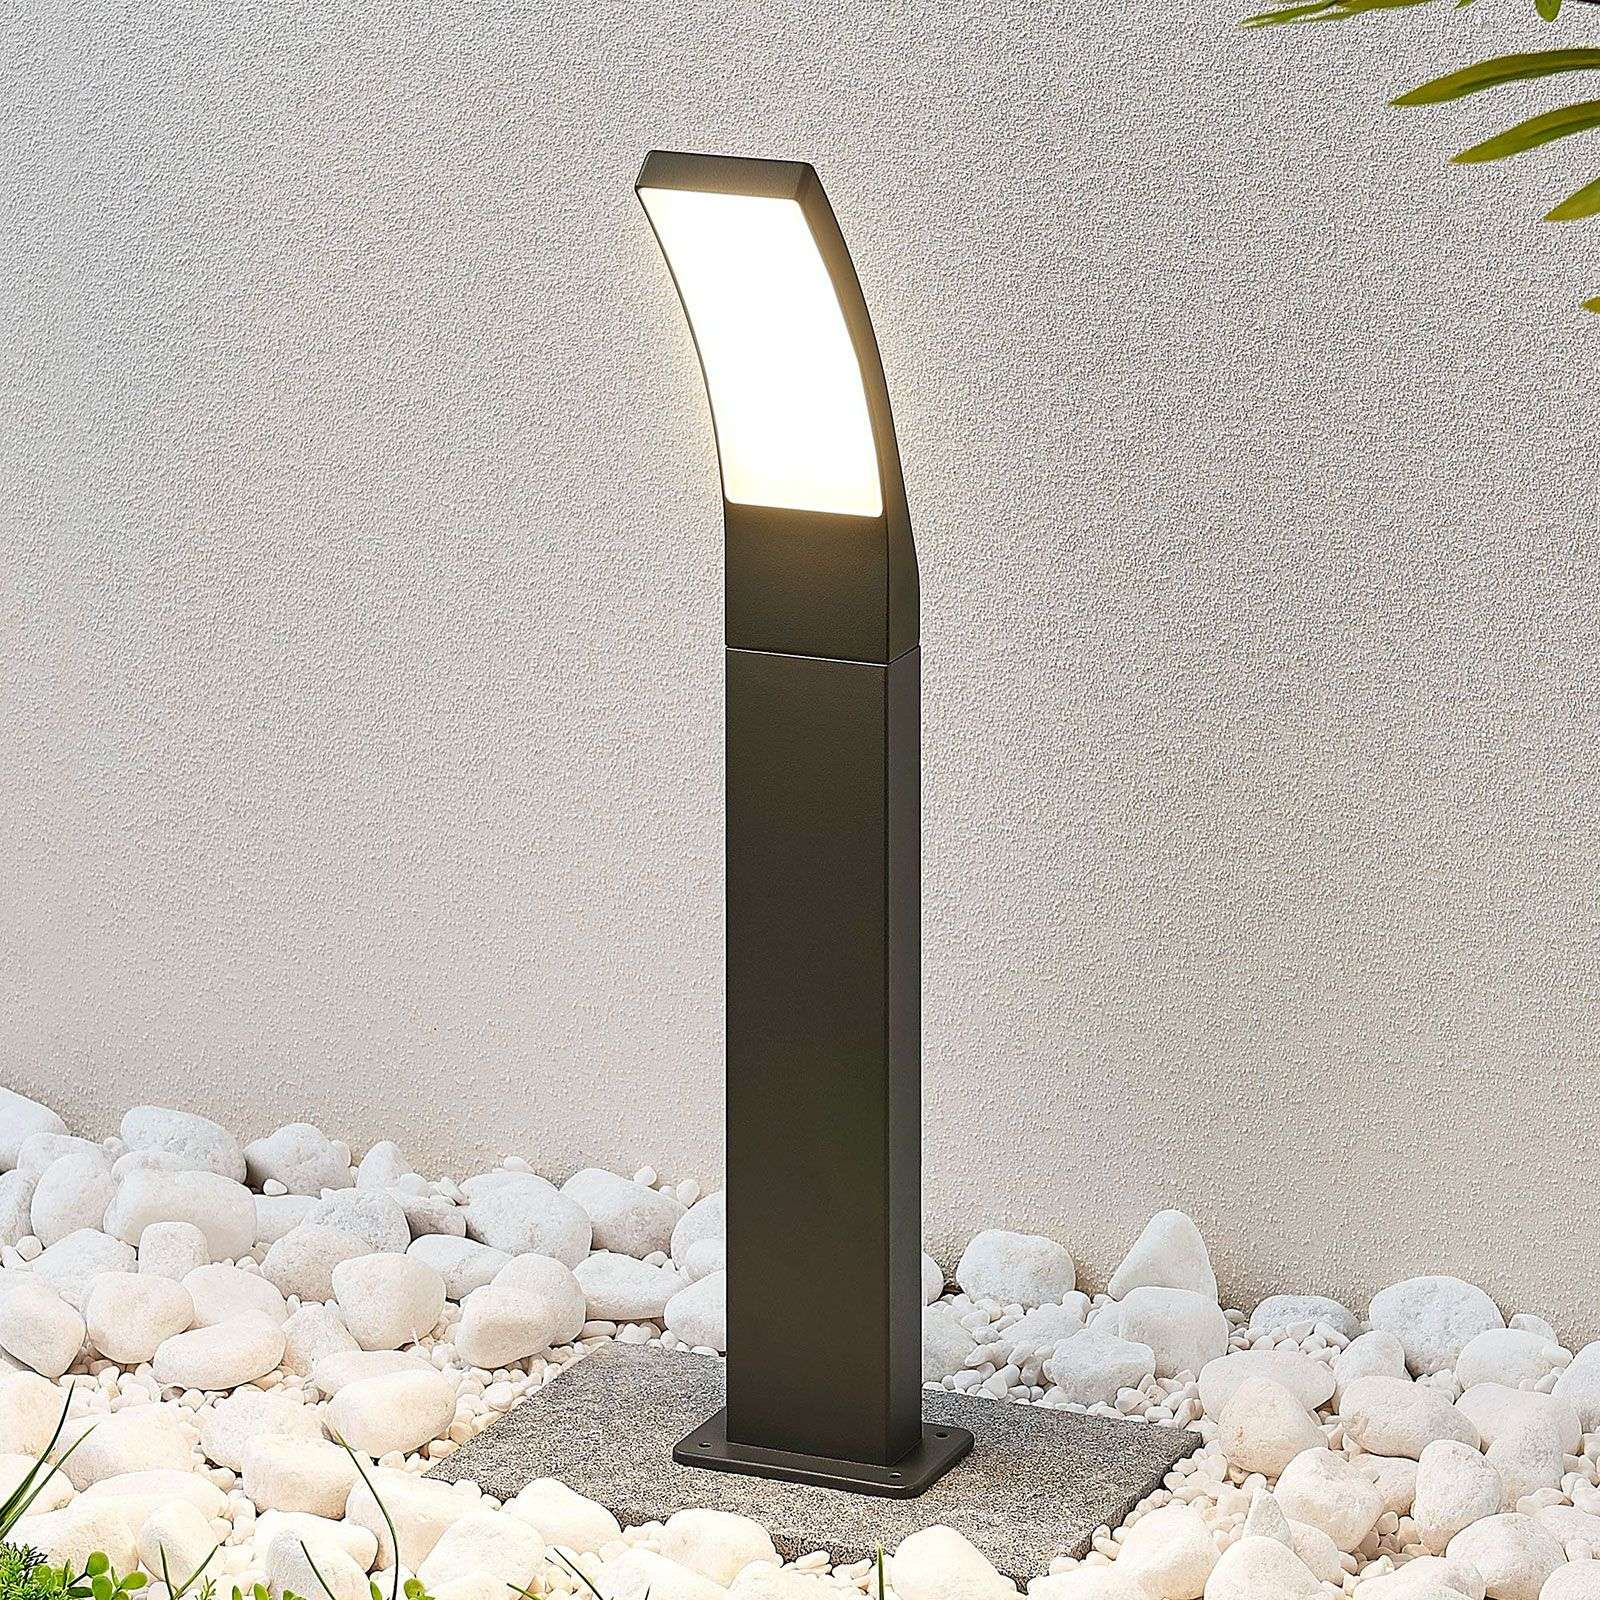 LED tuinpadverlichting Ilvita, antraciet